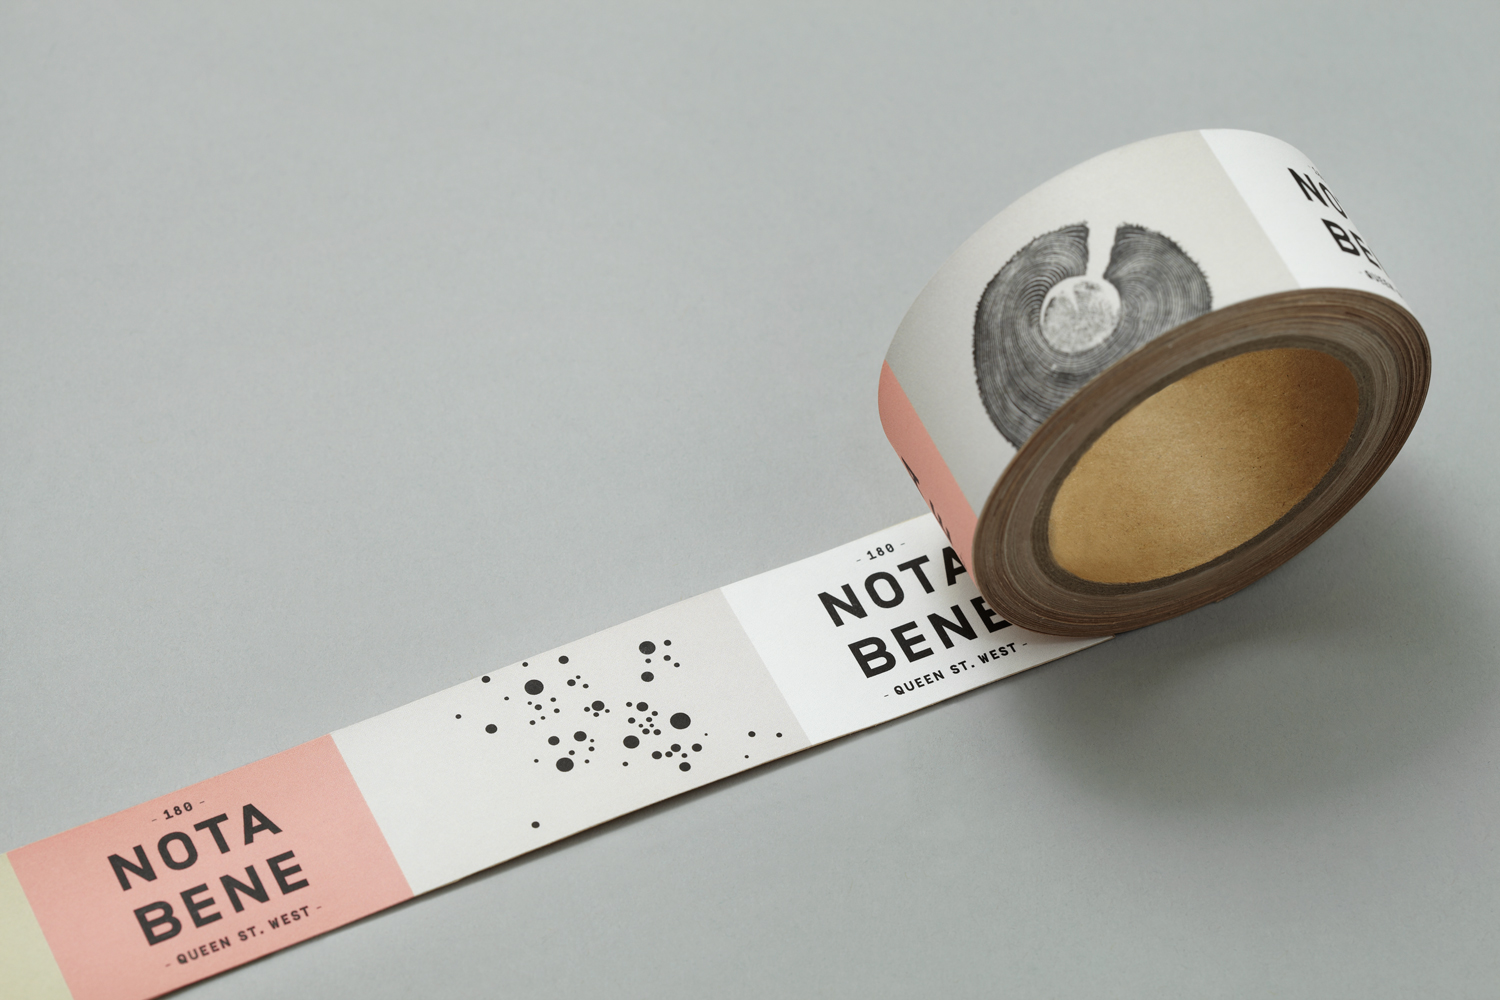 Brand identity and stickers for Toronto restaurant Nota Bene by graphic design studio Blok, Canada